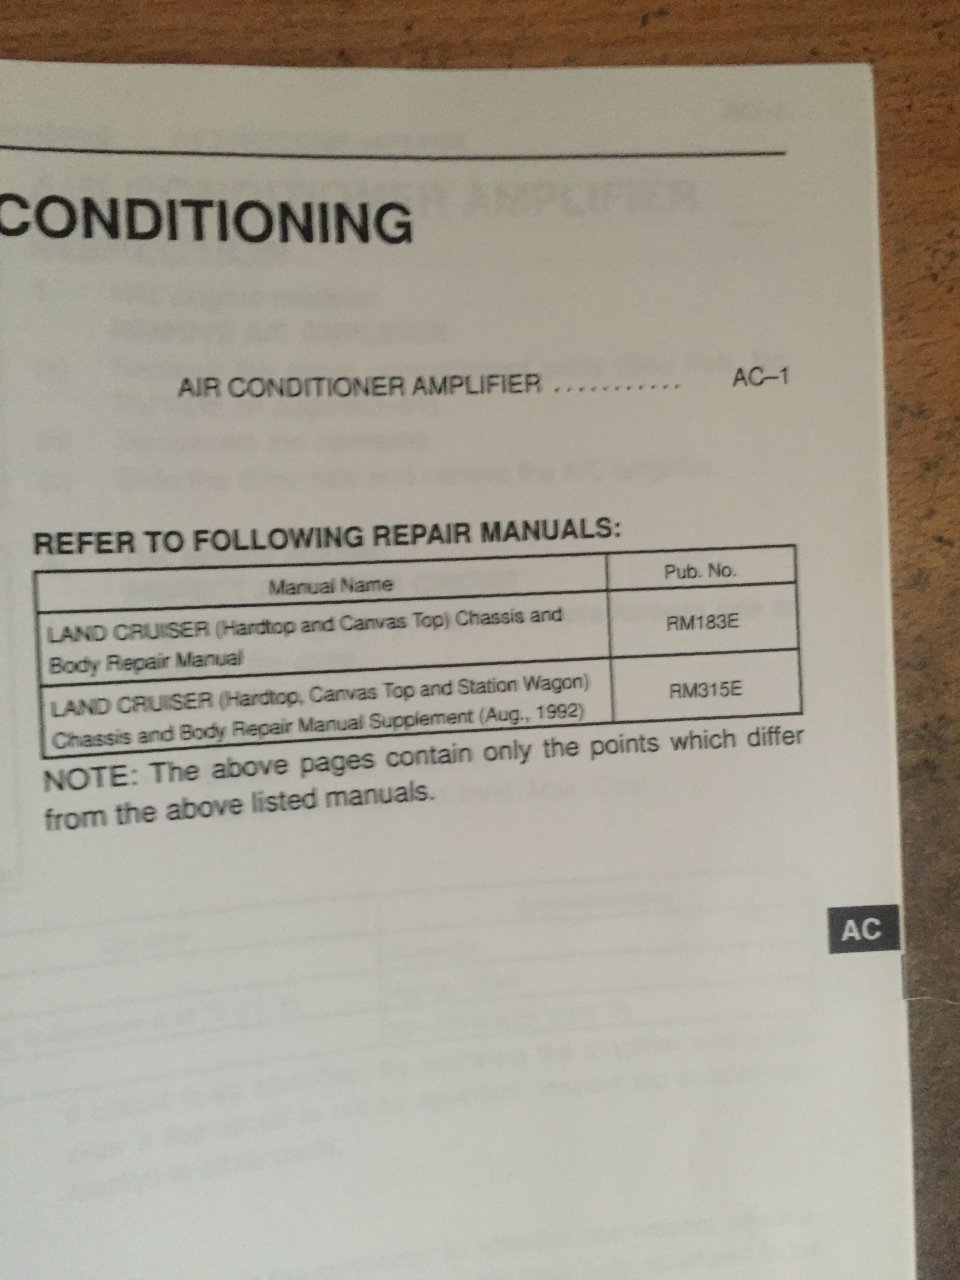 Toyota Vdj79r Air Con Amplifier Ih8mud Forum Fj60 Conditioner Wiring Diagram 99 Manual 002